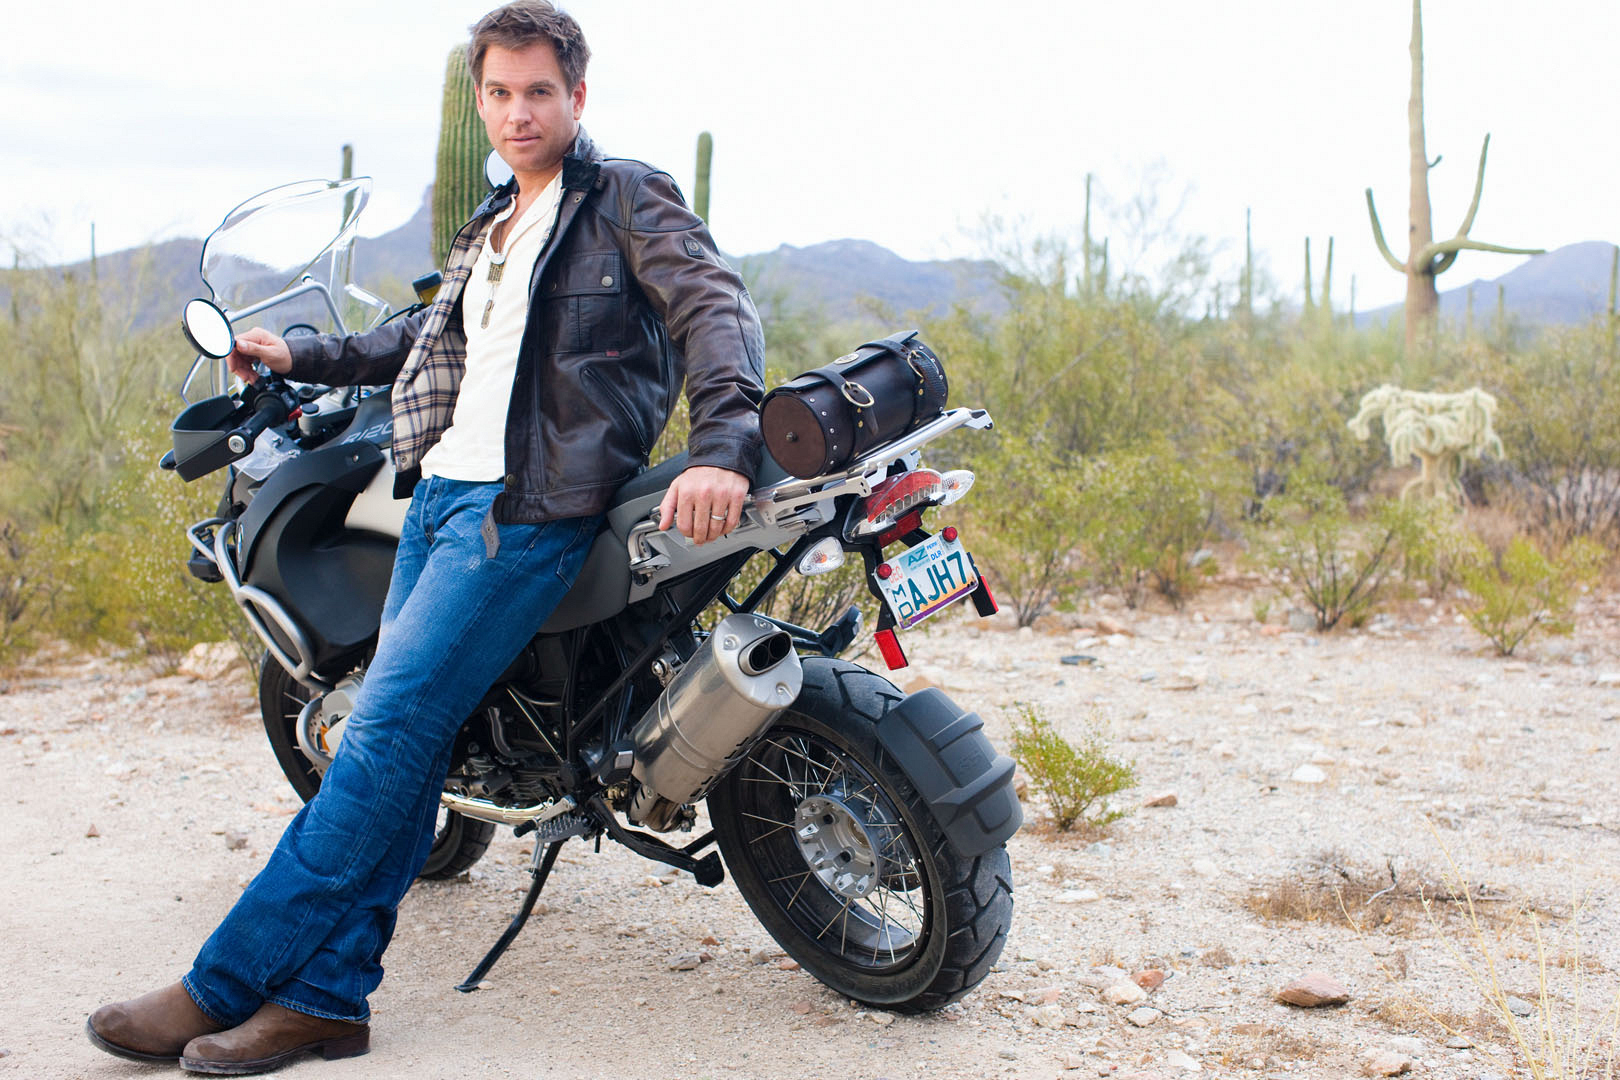 Michael Weatherly as king of the road